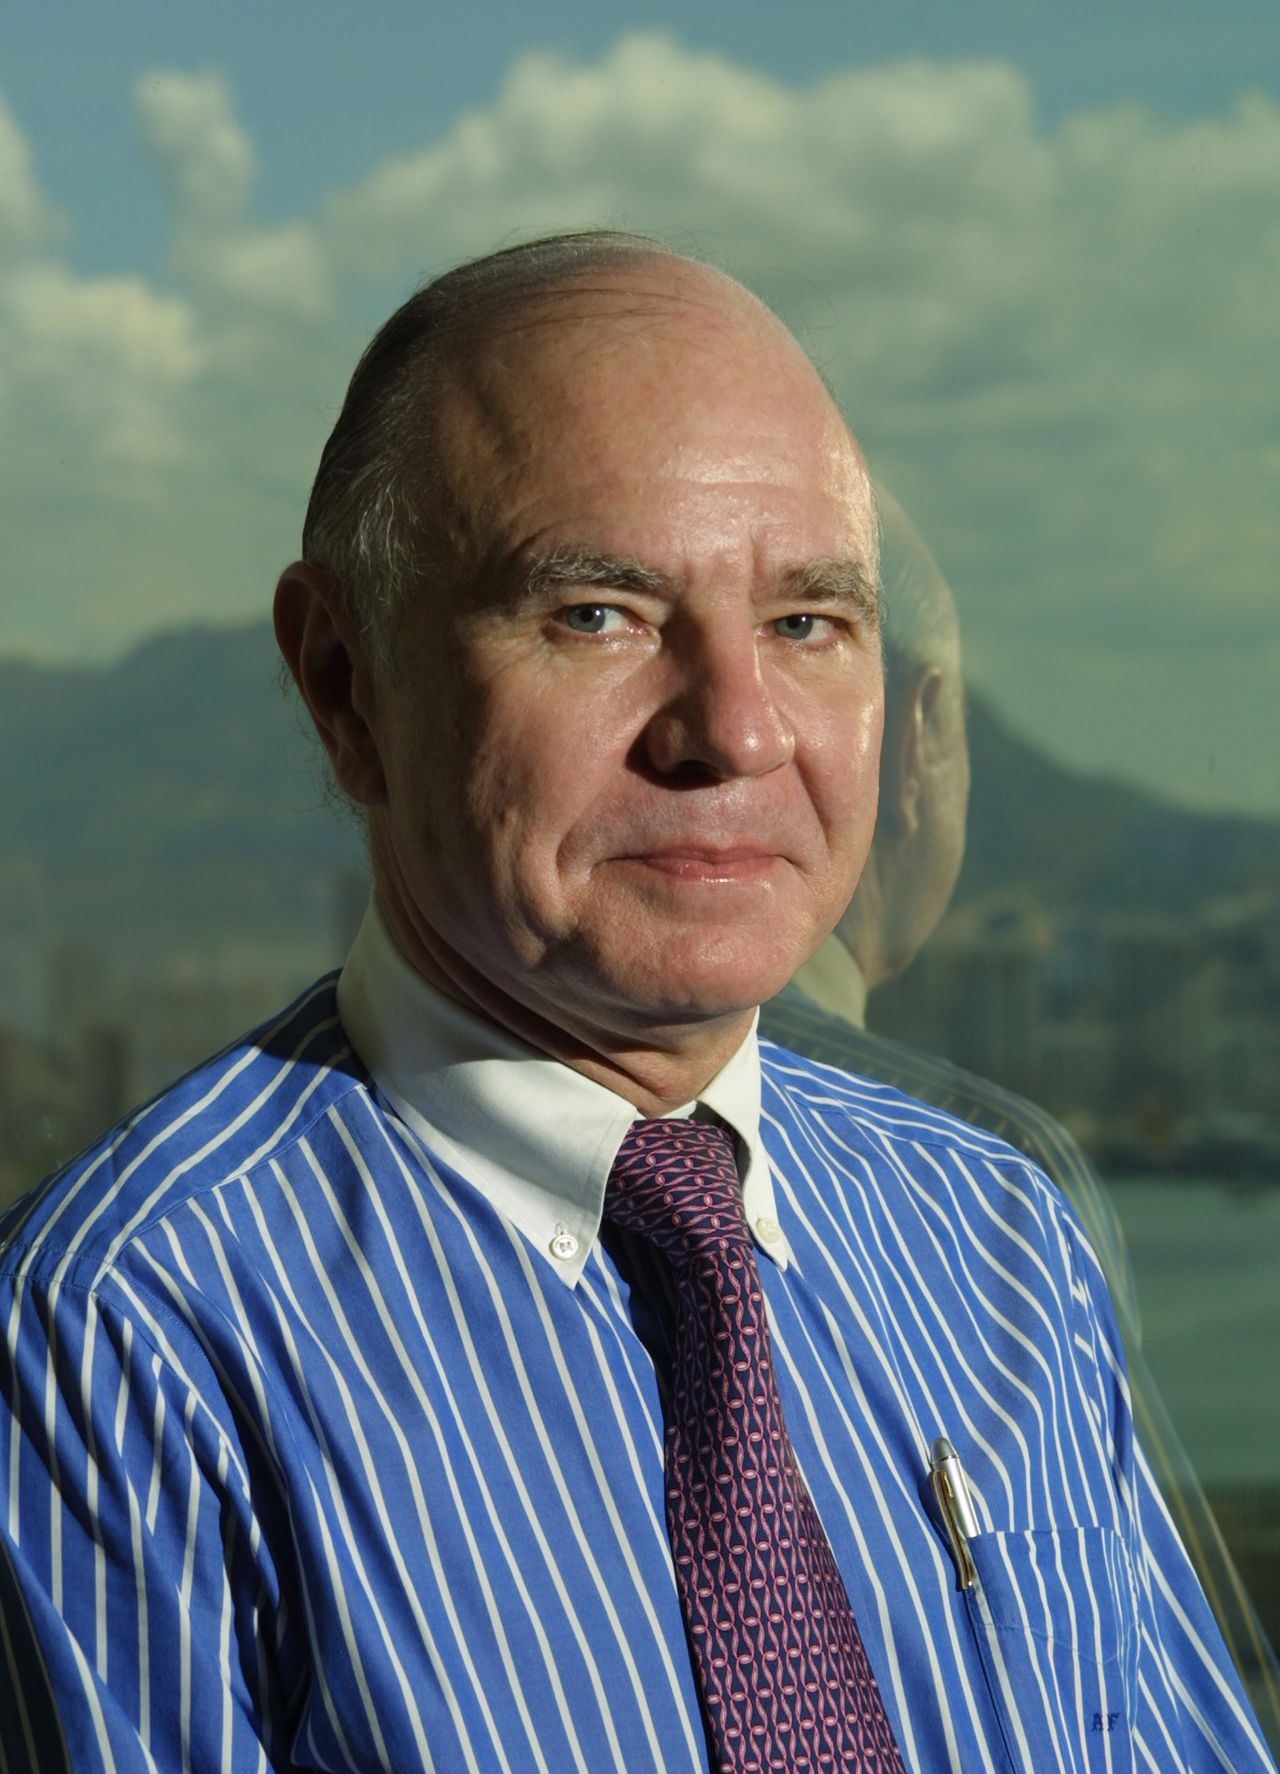 """Marc Faber, Investment Manager and Founder of Marc Faber Ltd., is pictured in Hong Kong Thursday, July 17, 2003. """"From an economic-growth and price perspective, Asia looks the best in the world,'' said Faber, who manages about $100 million and publishes a monthly investment newsletter called The Gloom, Boom & Doom Report. Photographer: Dennis Owen/Bloomberg News"""